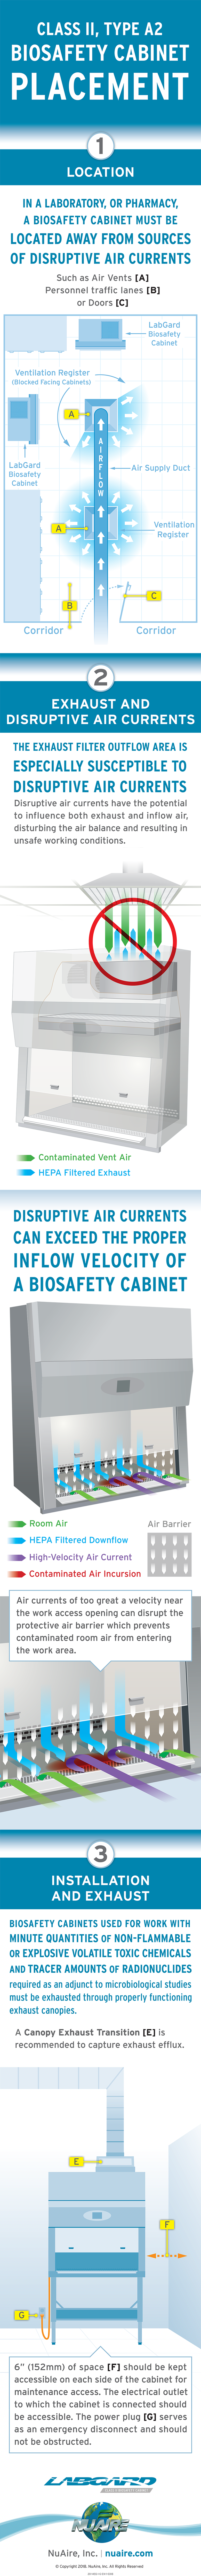 Class II, Type A2 Biosafety Cabinet Placement Infographic